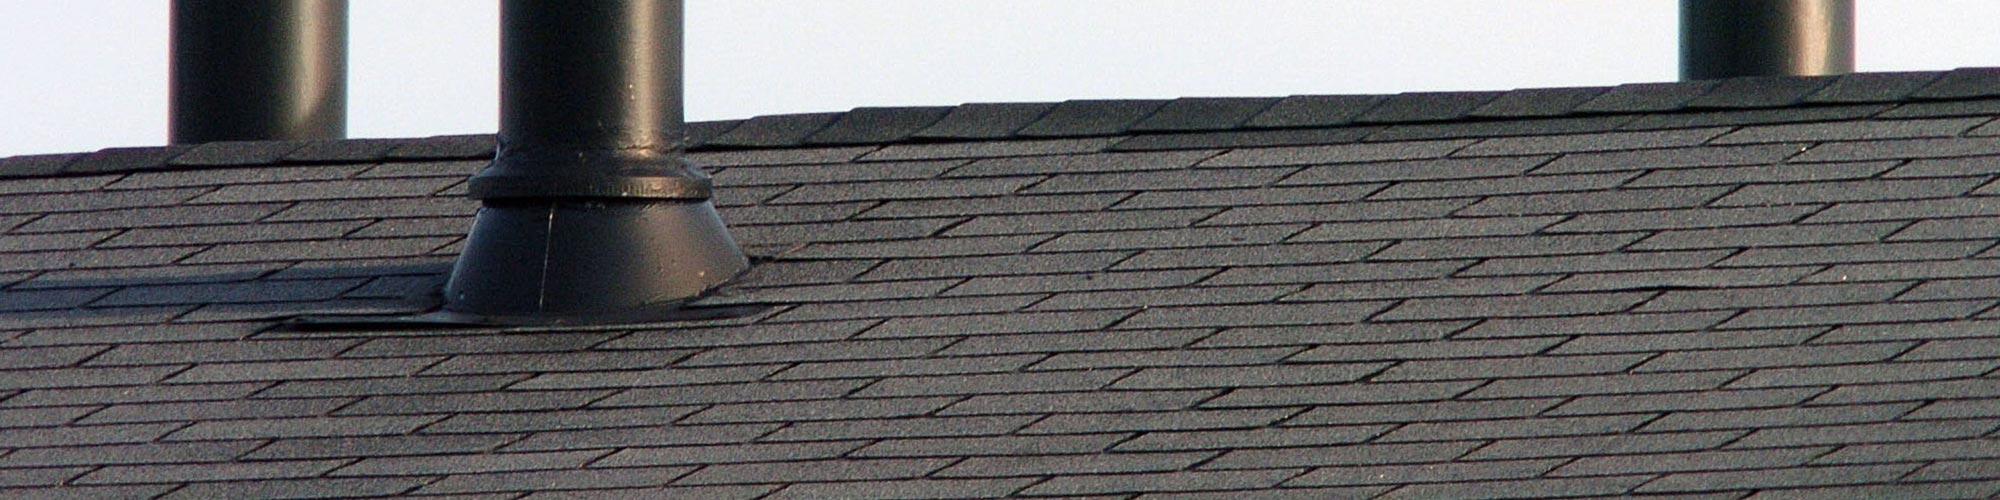 Shingles by North Tech Roofing